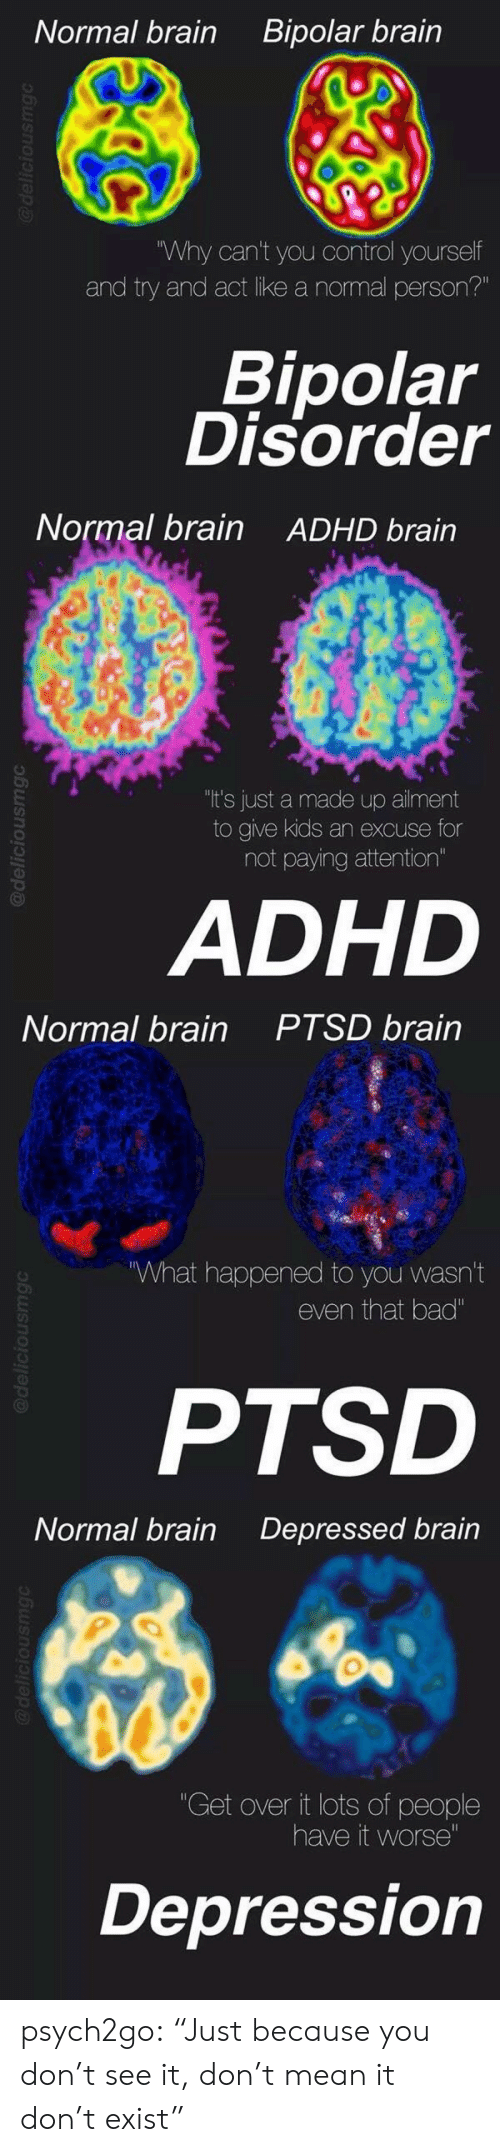 """bipolar disorder: Bipolar brain  Normal brain  """"Why can't you control yourself  and try and act like a normal person?""""  Bipolar  Disorder  @deliciousmgc   Normal brain  ADHD brain  """"It's just a made up ailment  to give kids an excuse for  not paying attention""""  ADHD  @deliciousmgc   PTSD brain  Normal brain  What happened to you wasn't  even that bad""""  PTSD  @deliciousmgC   Normal brain  Depressed brain  """"Get over it lots of people  have it worse""""  Depression  @deliciousmg psych2go:  """"Just because you don't see it, don't mean it don't exist"""""""